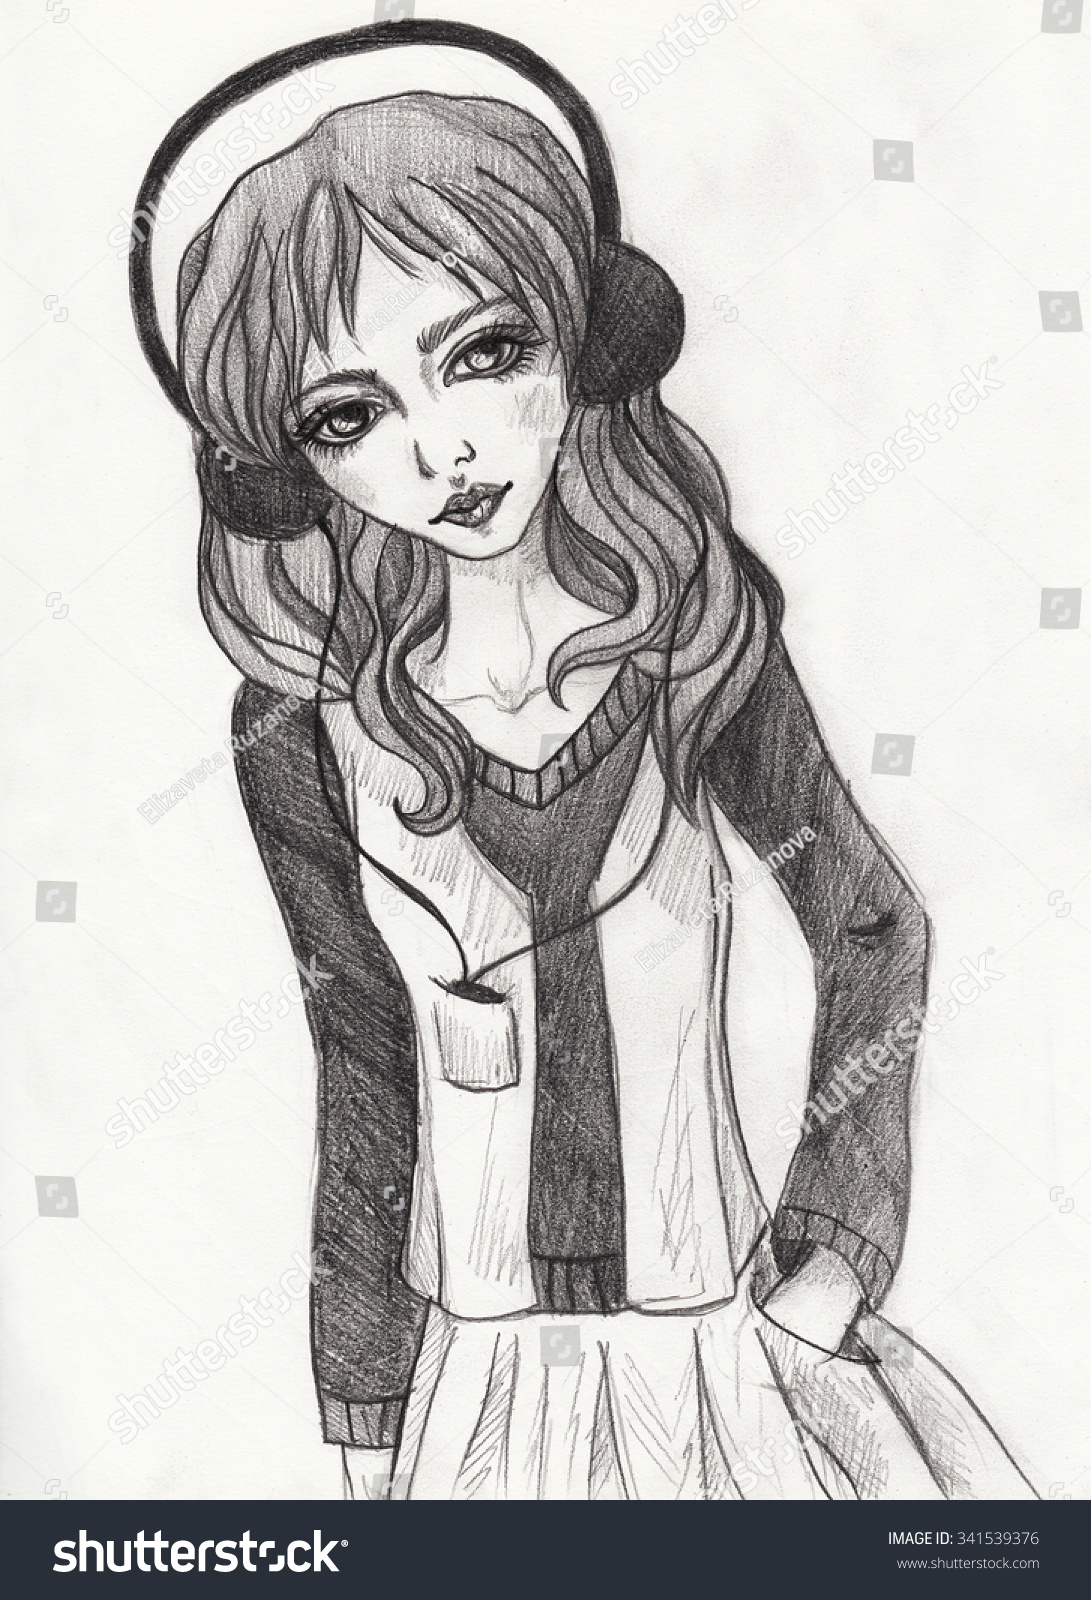 Girl listening to music pencil hand drawn illustration sketch